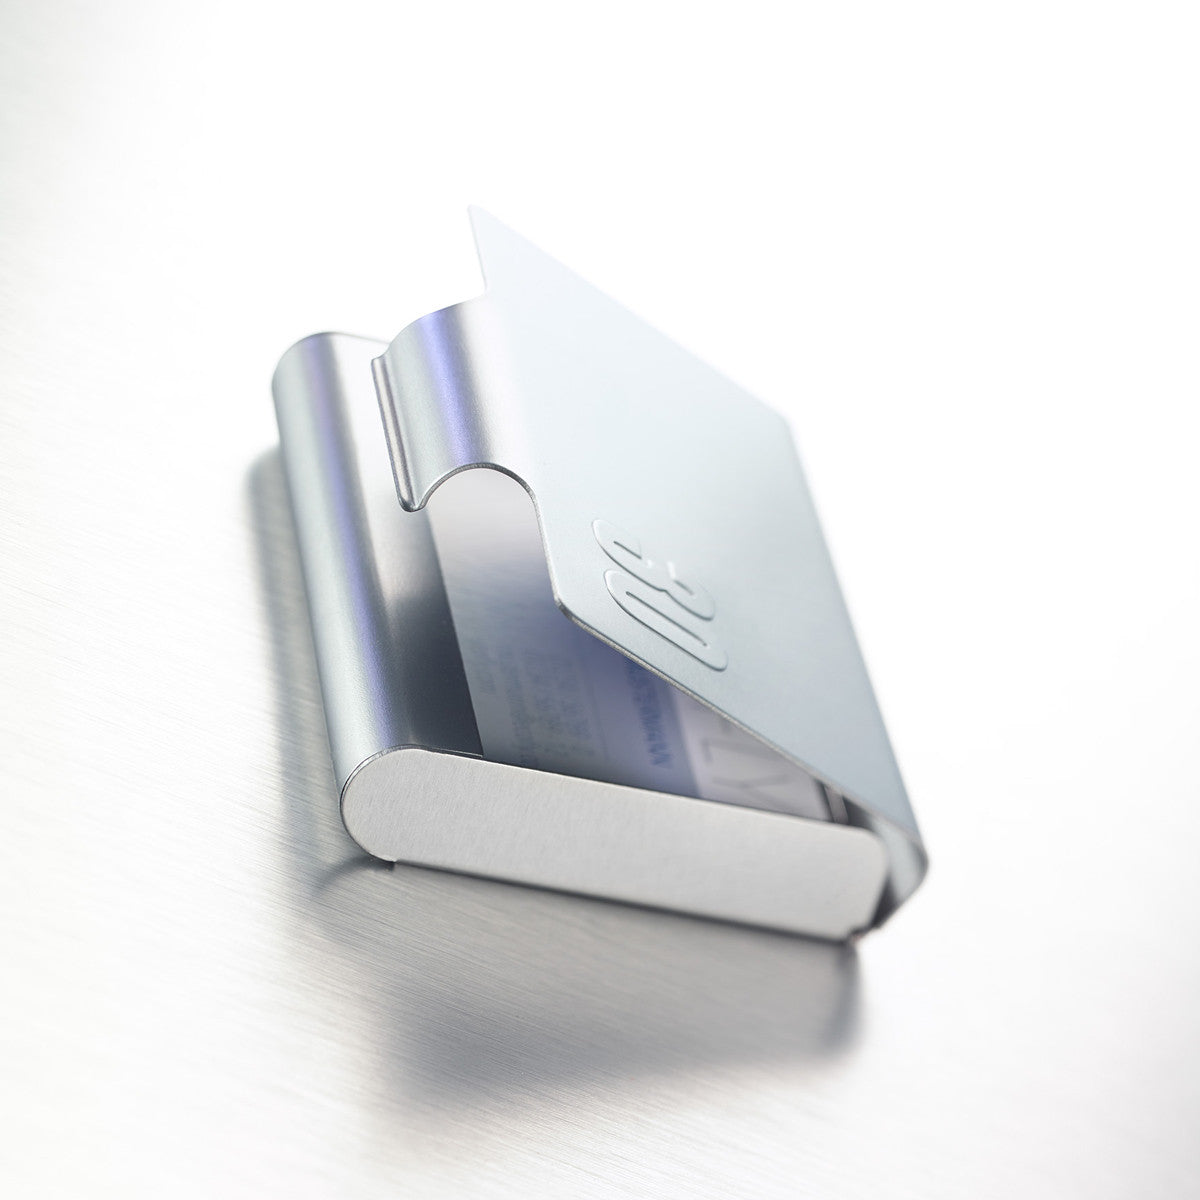 Troika Business Card Cases, Large Selection of styles | Troikaus.com